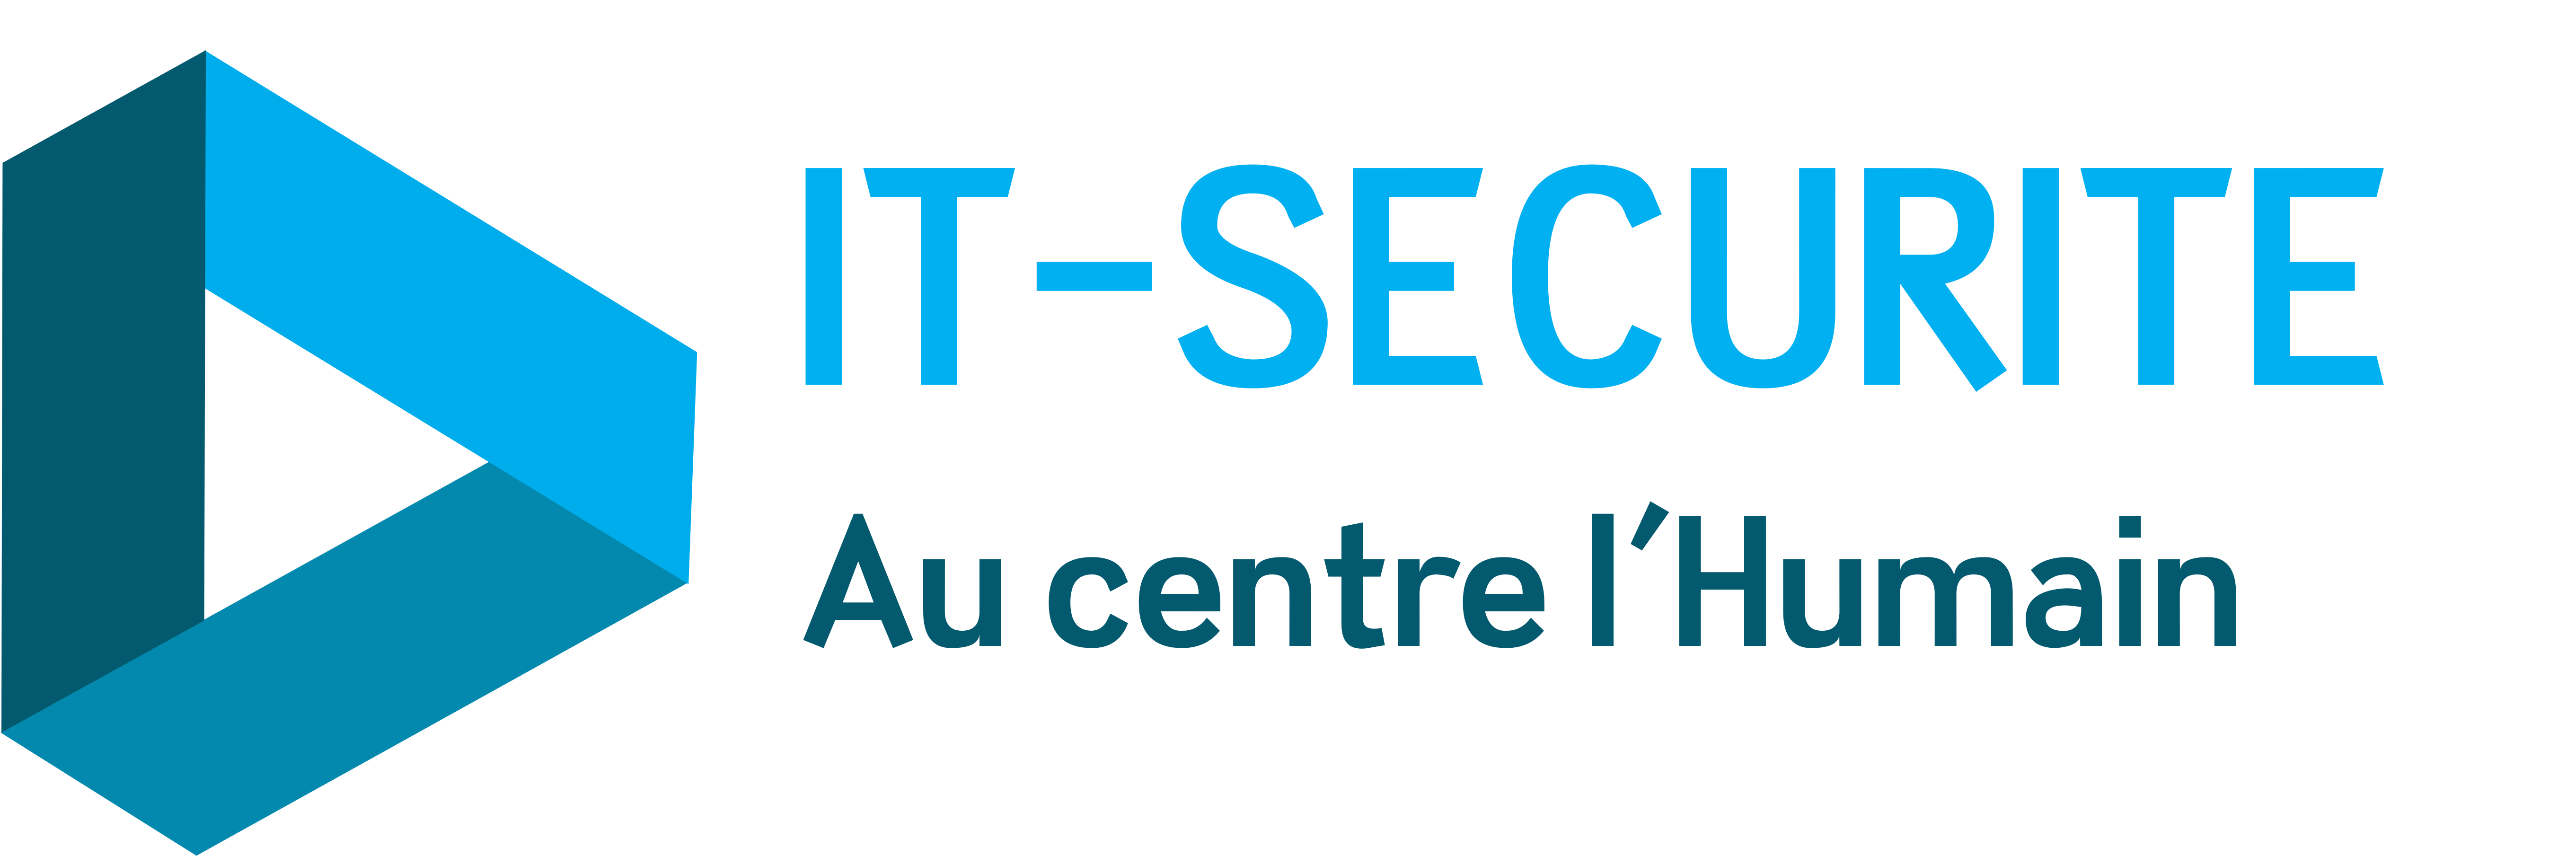 IT-SECURITE